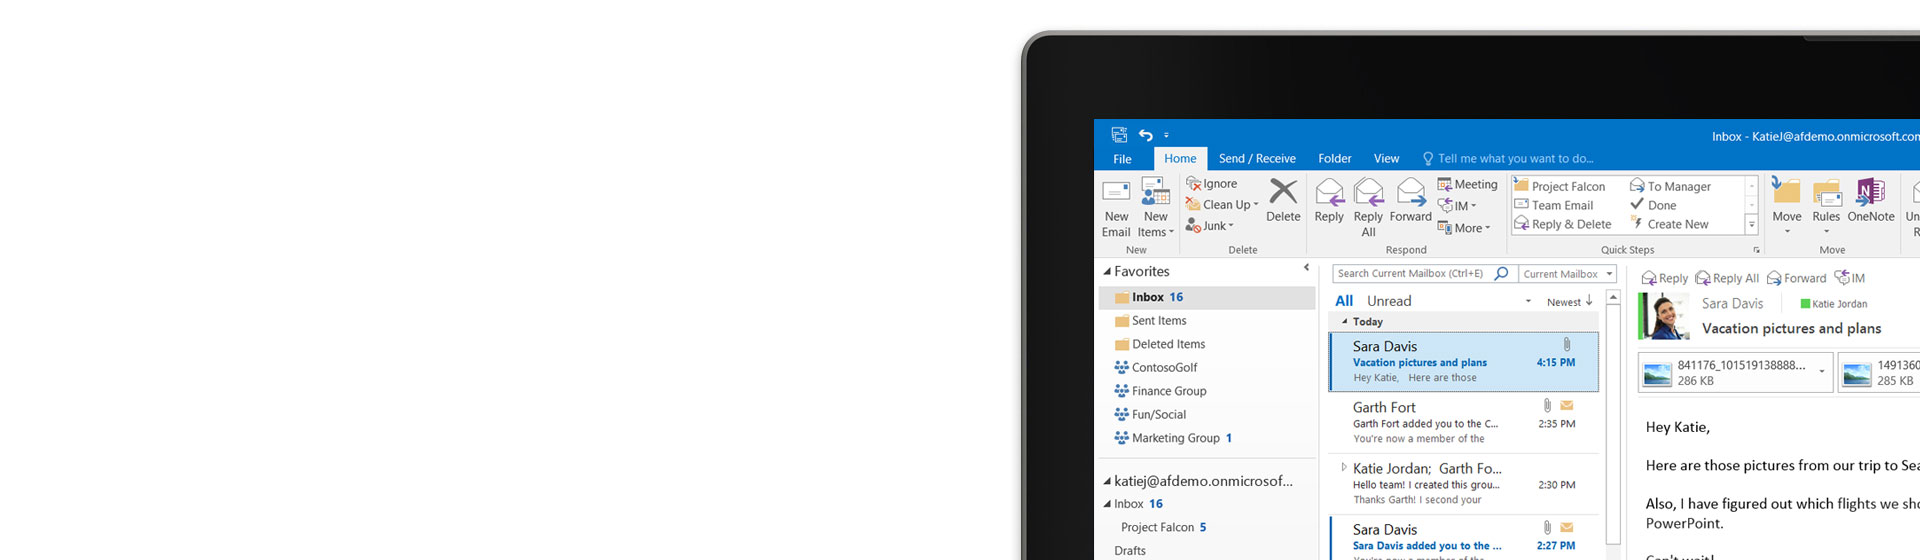 A tablet showing a Microsoft Outlook 2016 inbox with a message list and preview